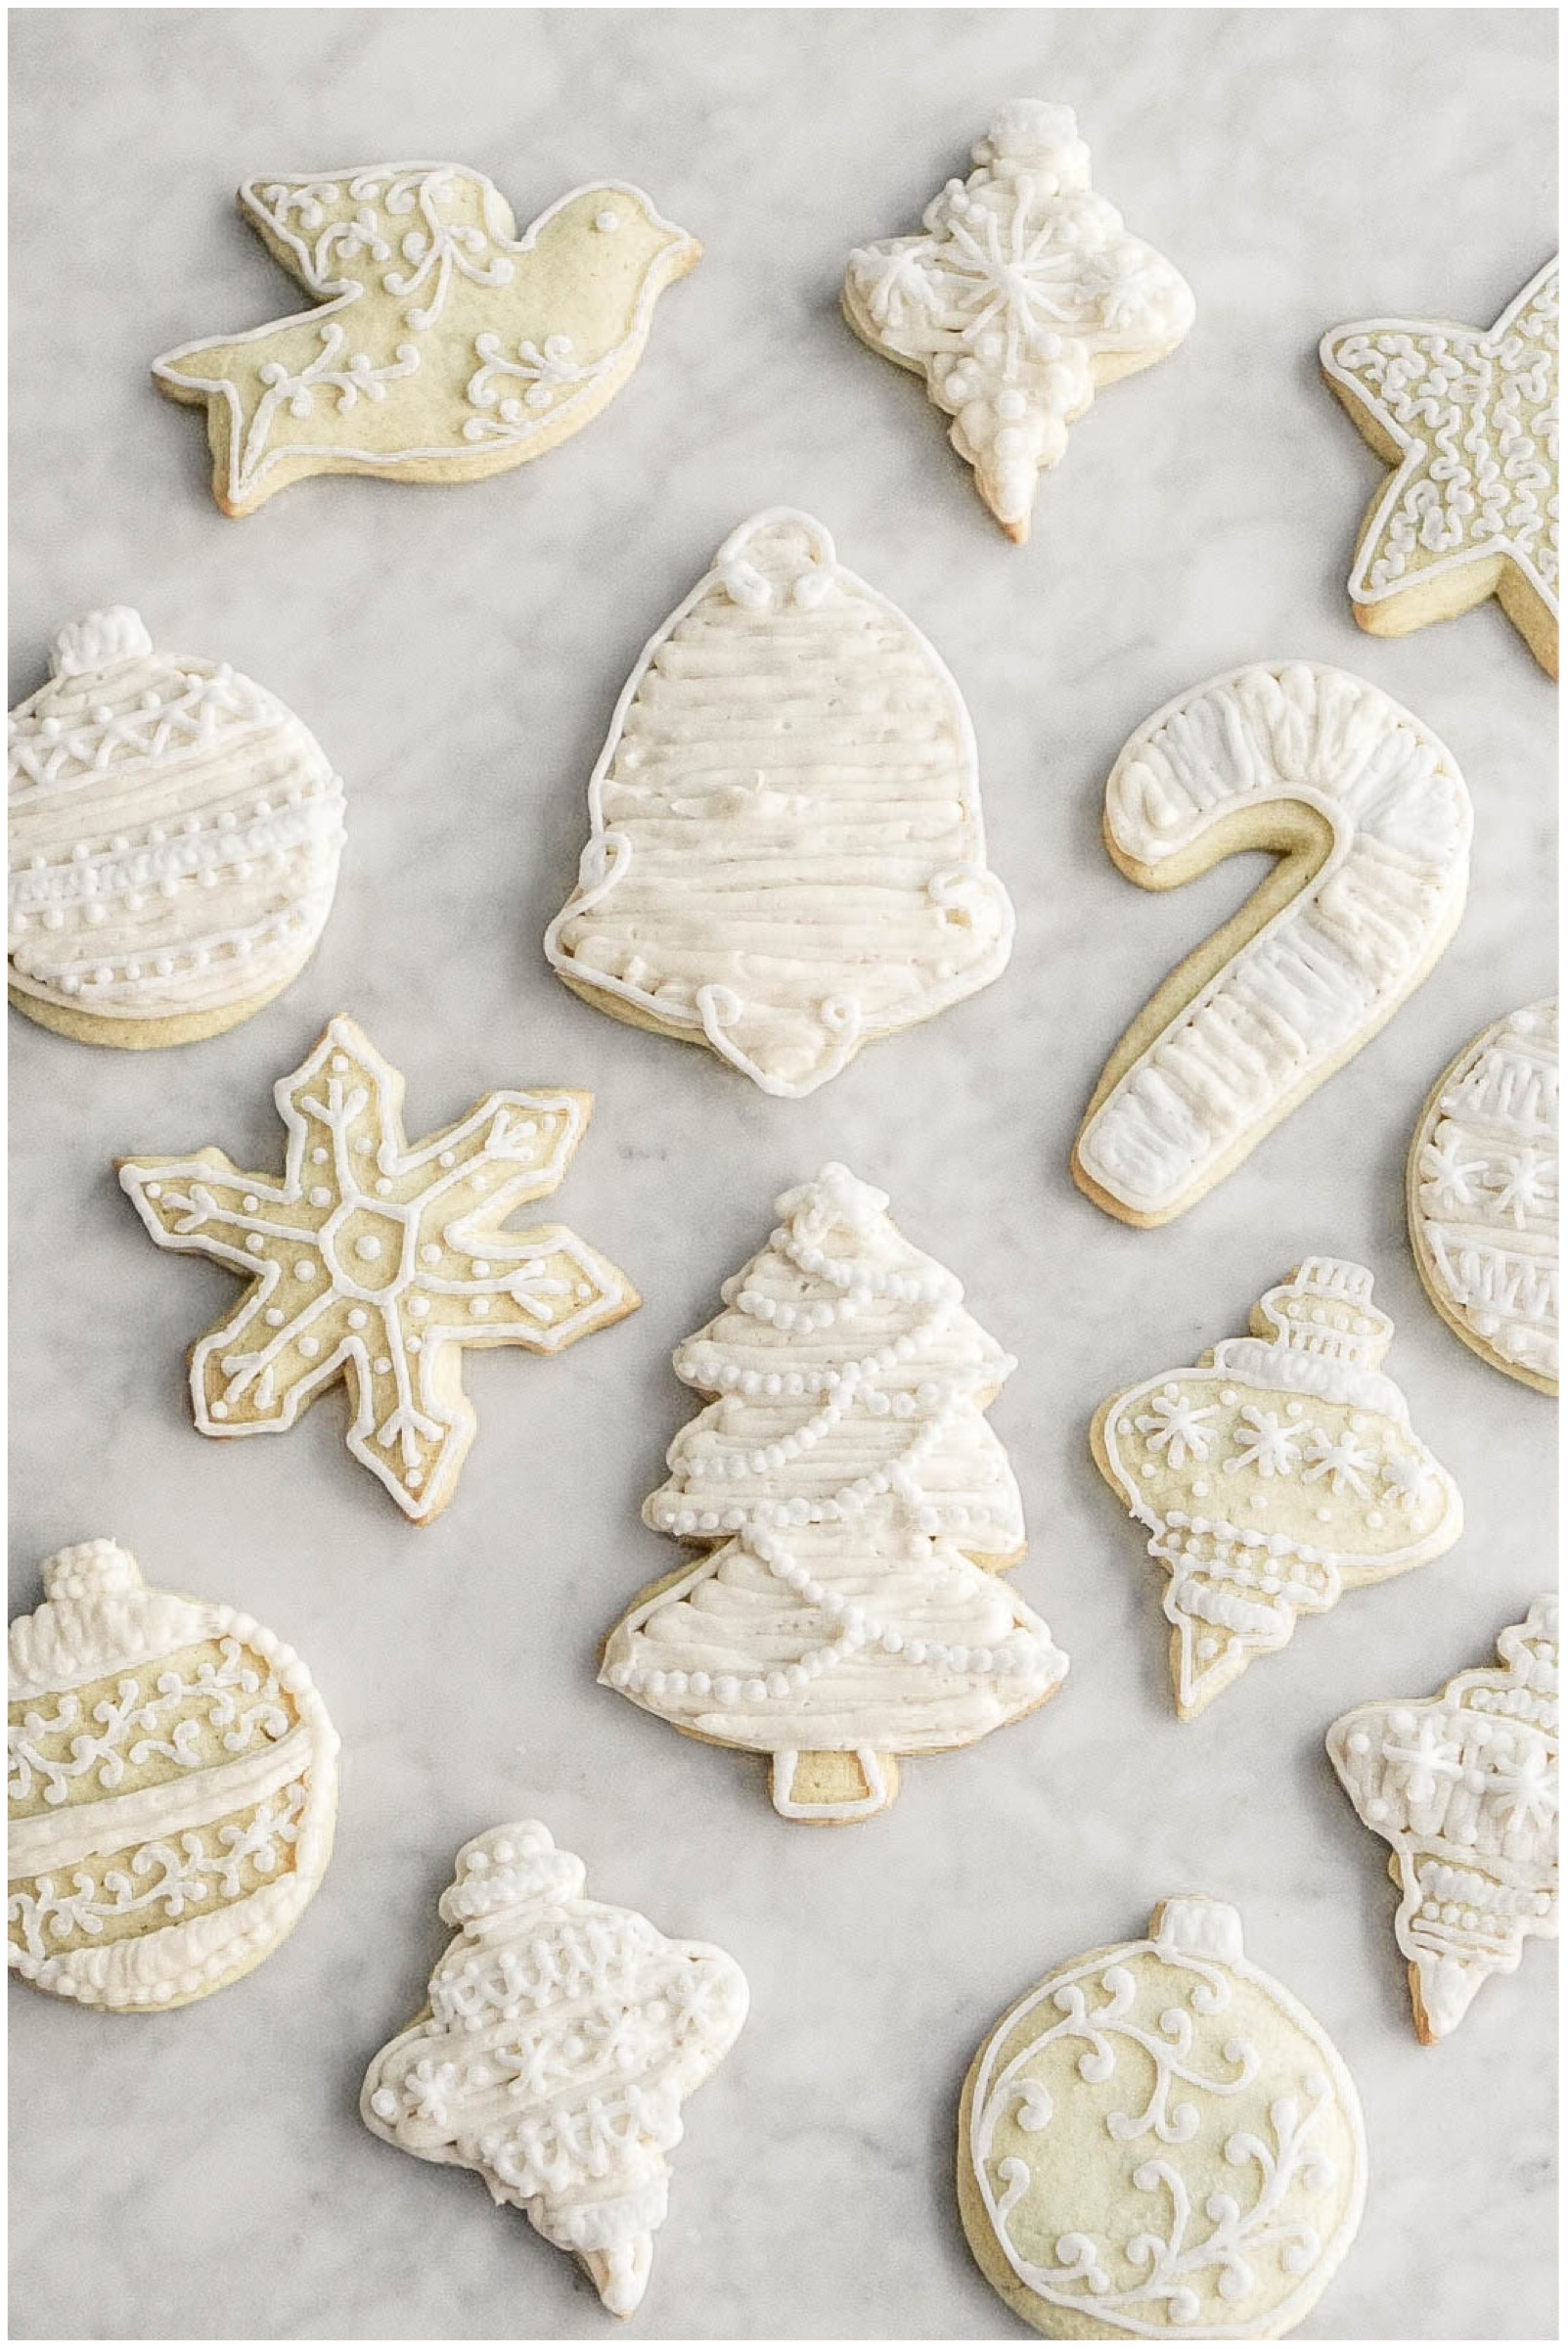 sinclair-and-moore-christmas-2016-cookies-35